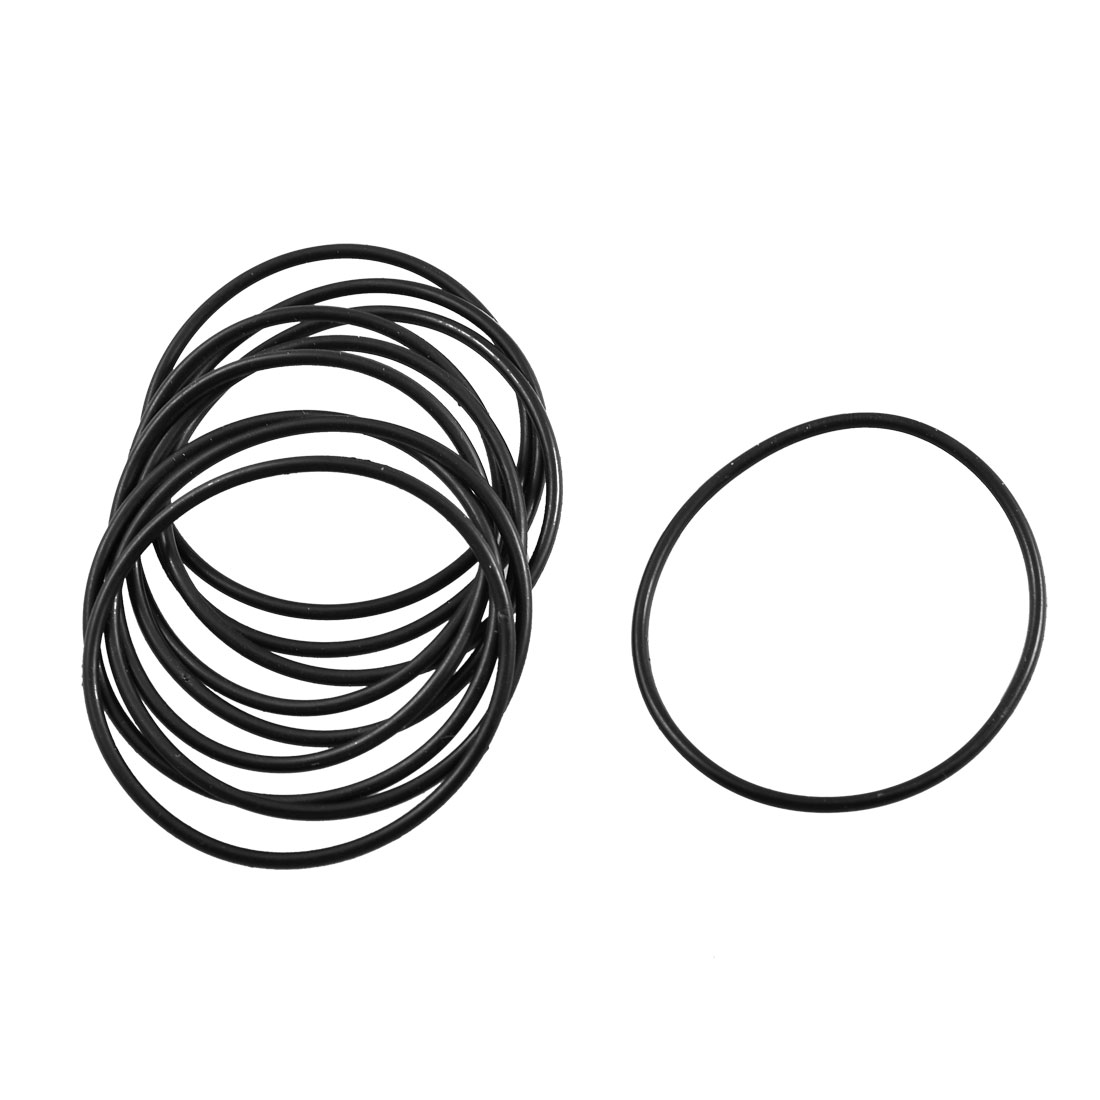 Unique Bargains 10 Pcs 41.2mm Inside Dia 1.8mm Thick Rubber Oil Sealing Gasket O Ring